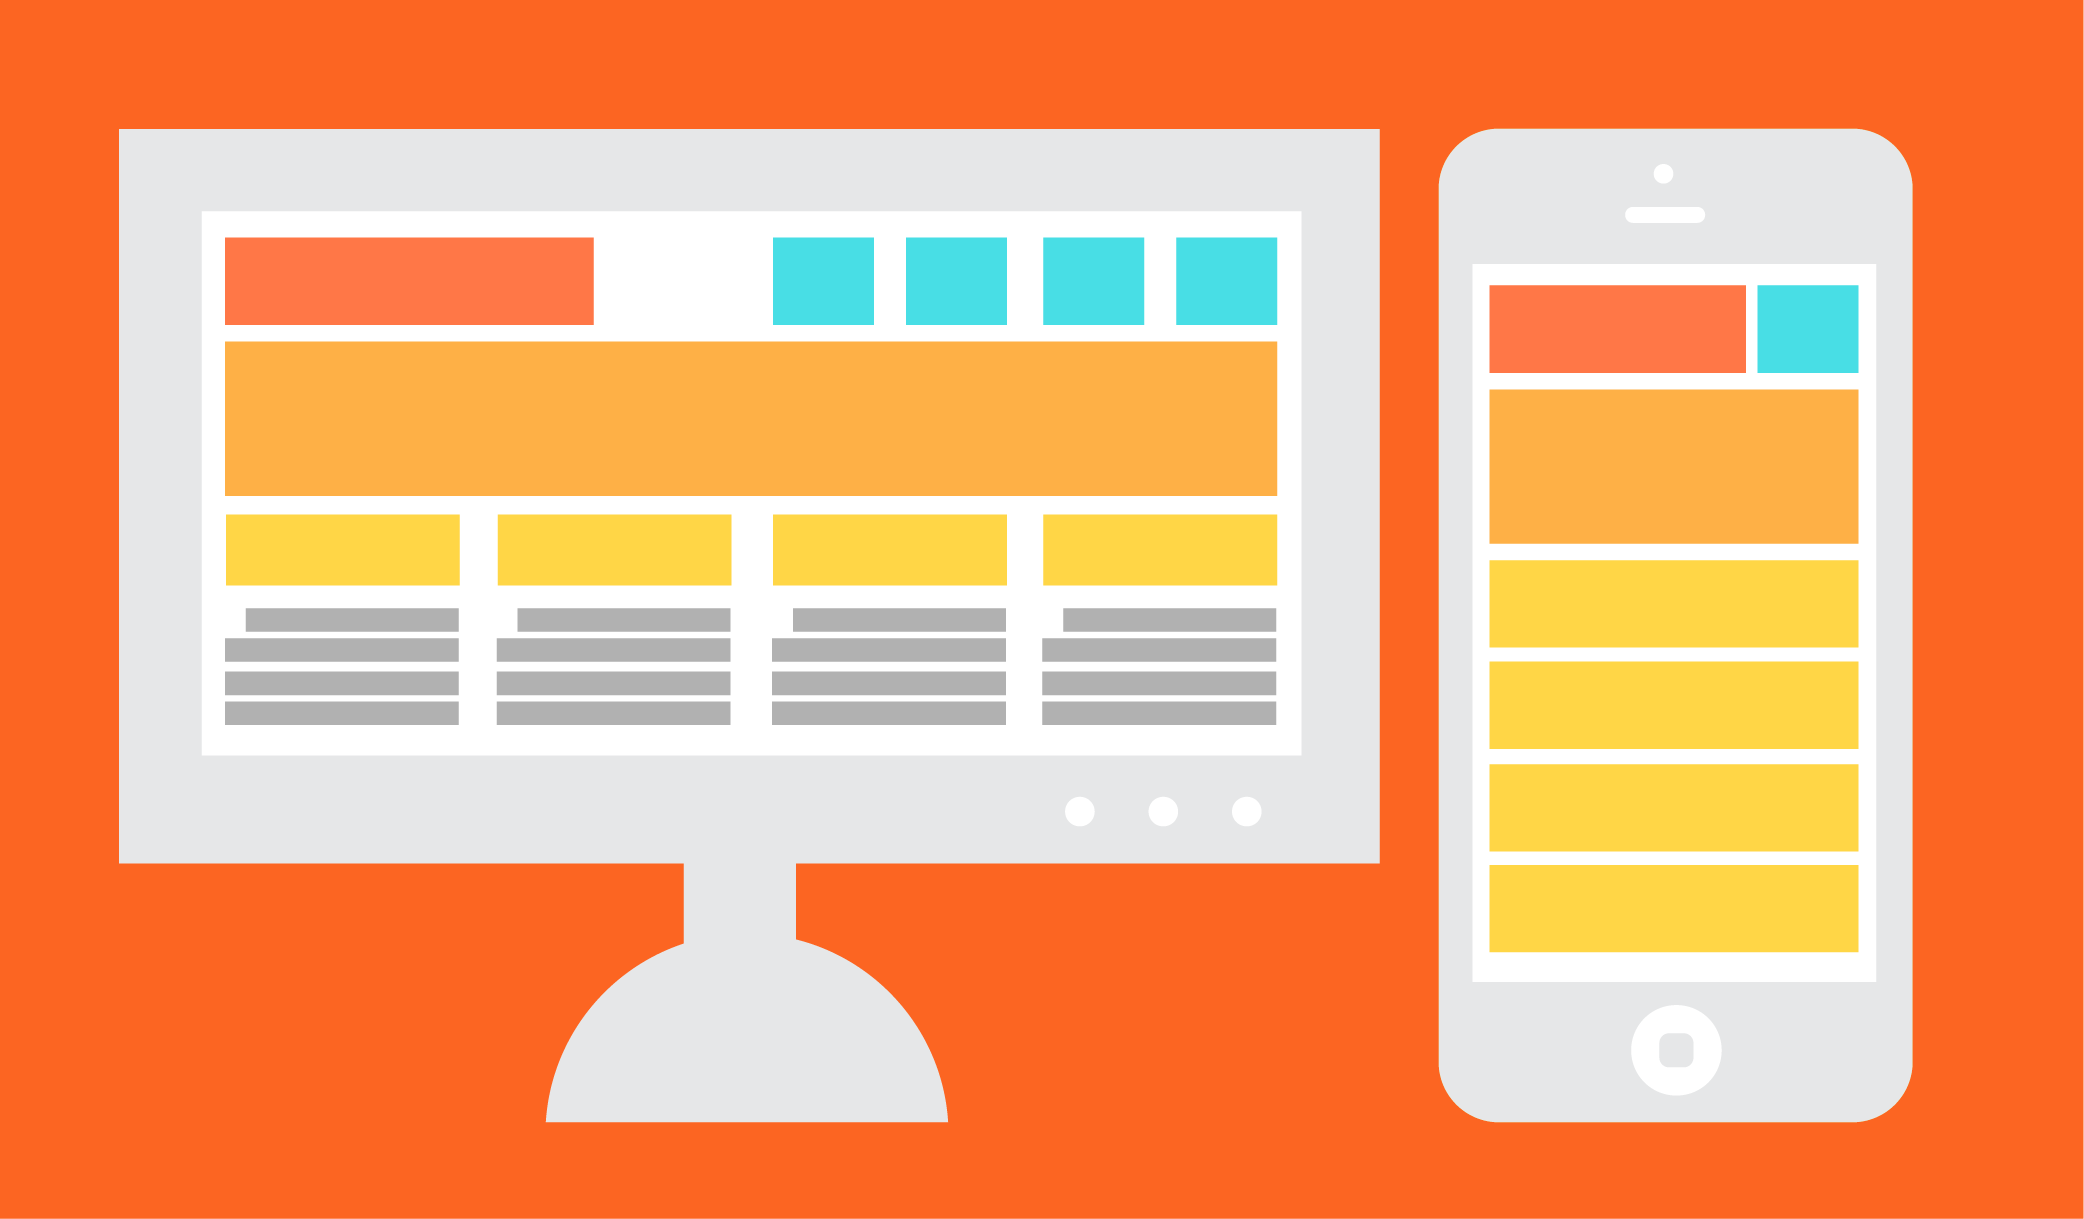 Illustration showing how content is organized differently for desktop and mobile screens.